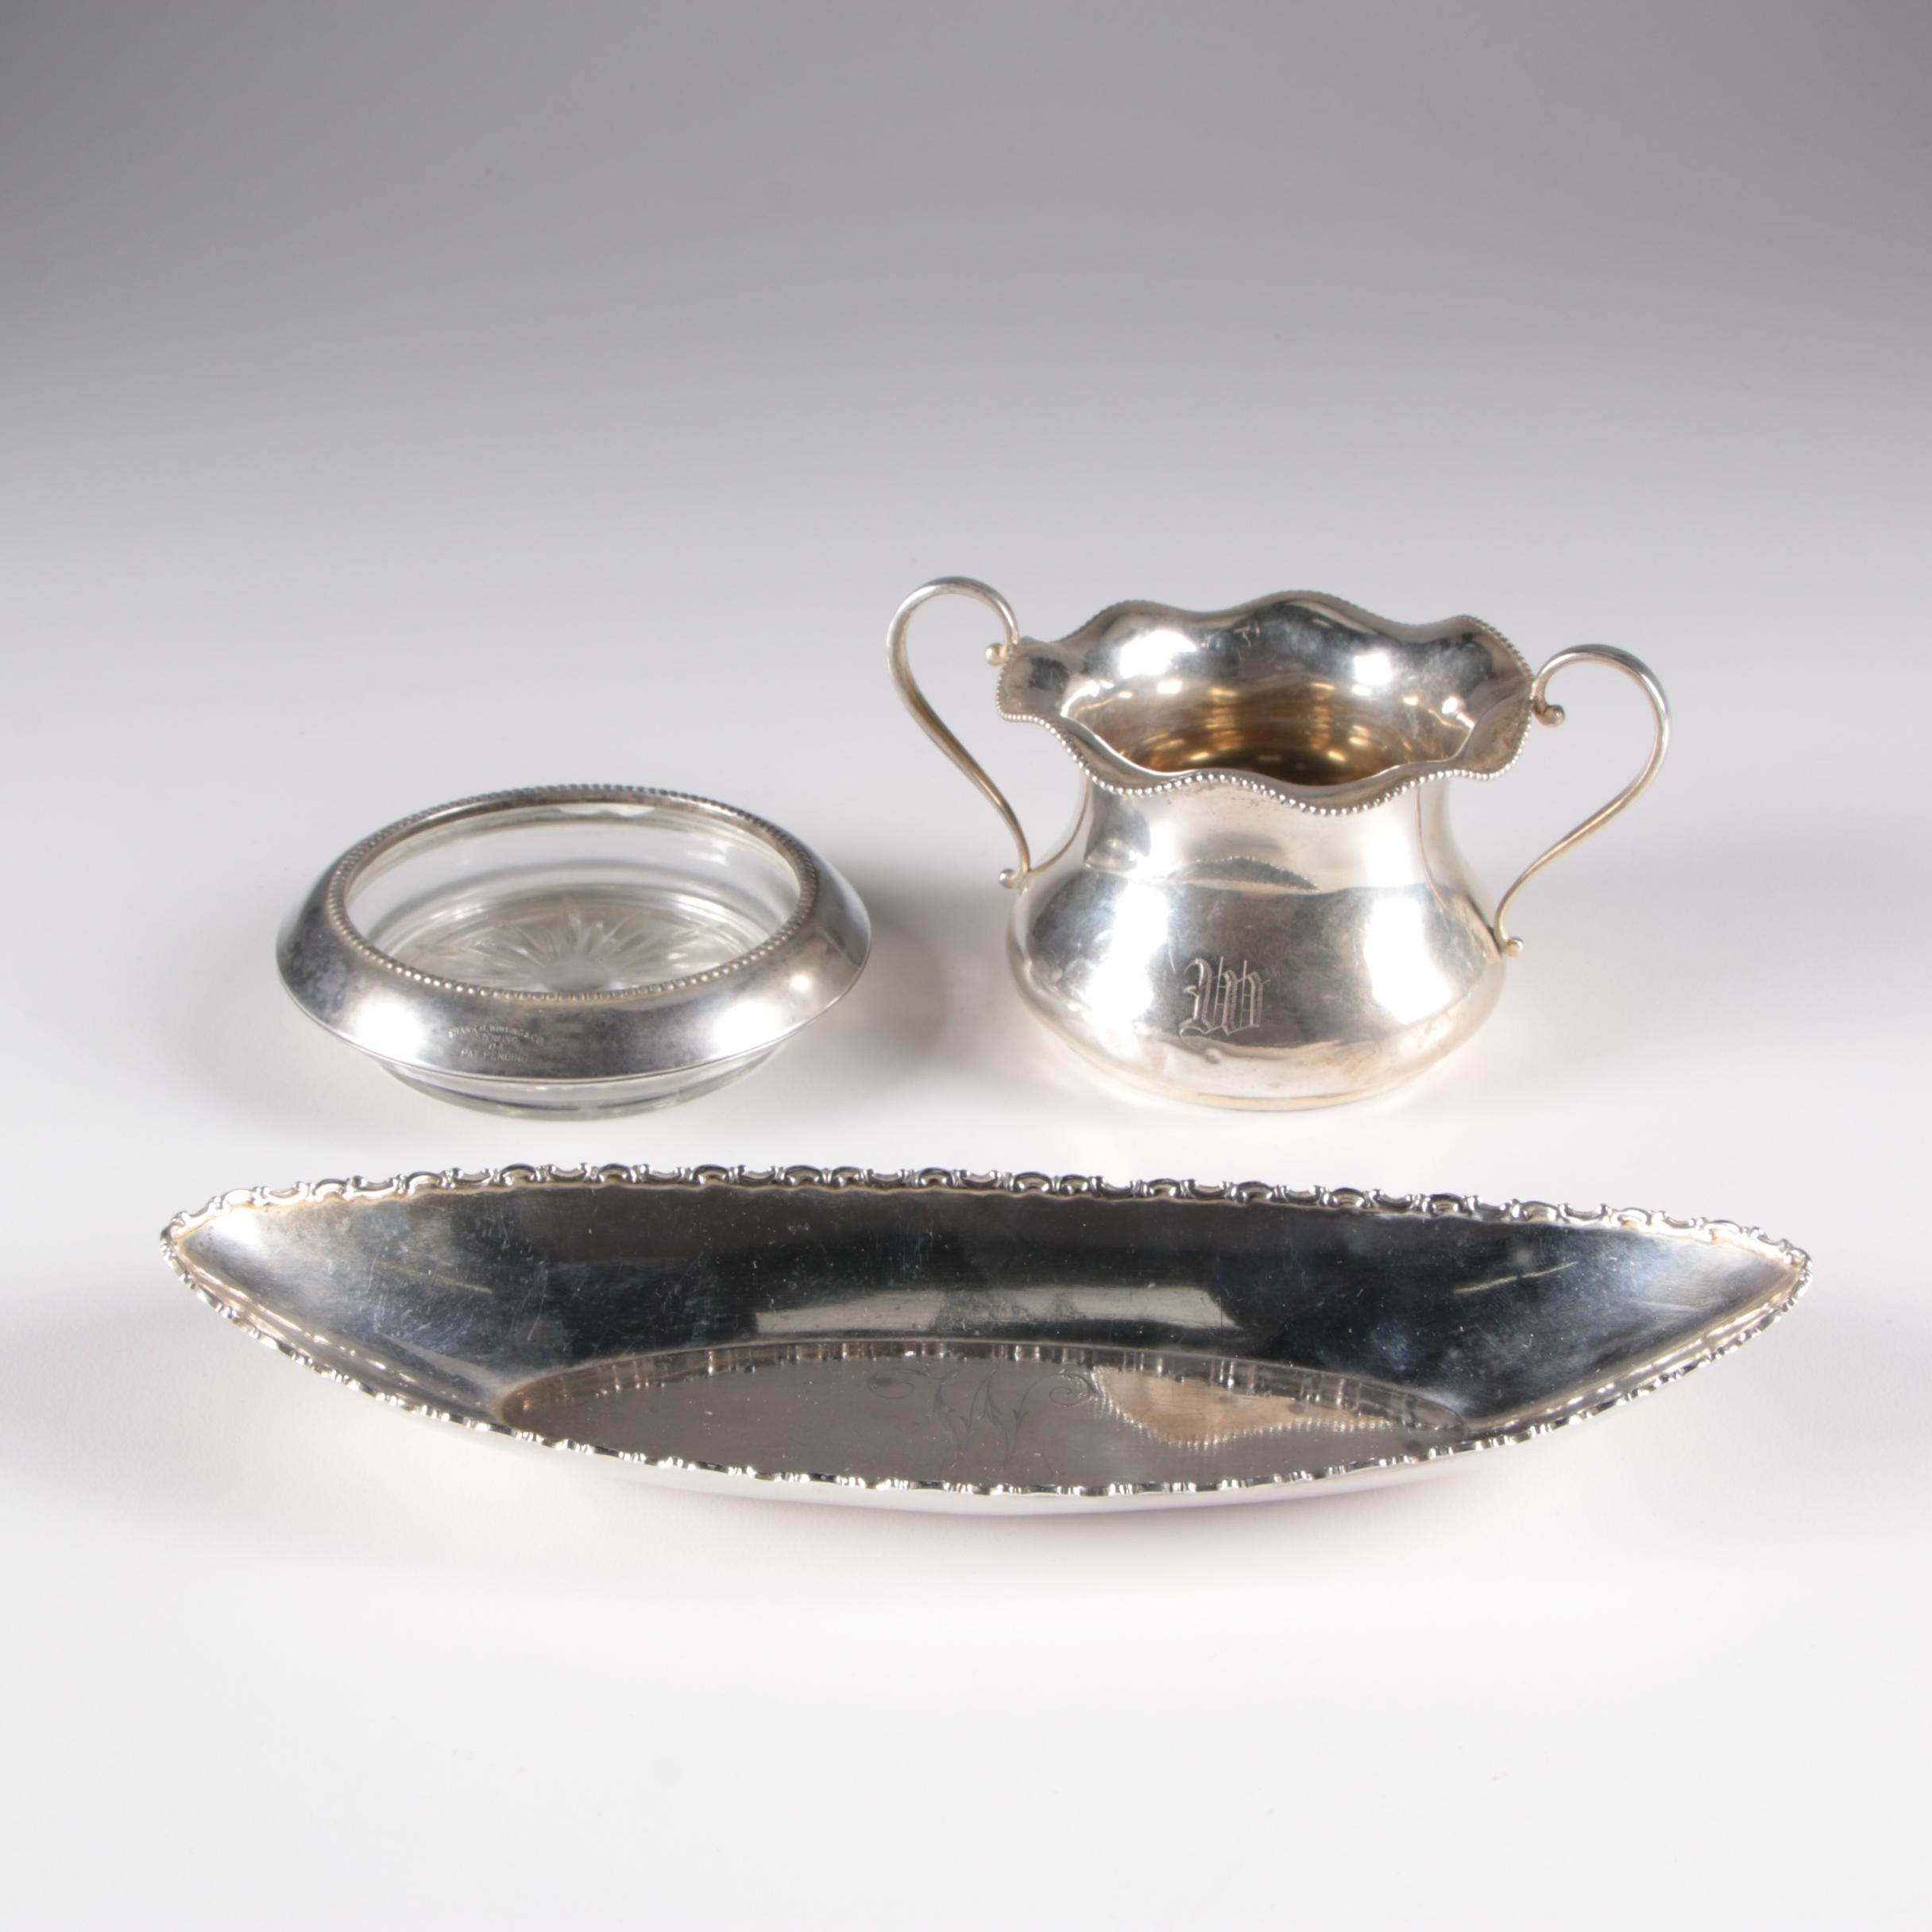 International Silver Co. Sterling Sugar Bowl and Other Sterling Tableware